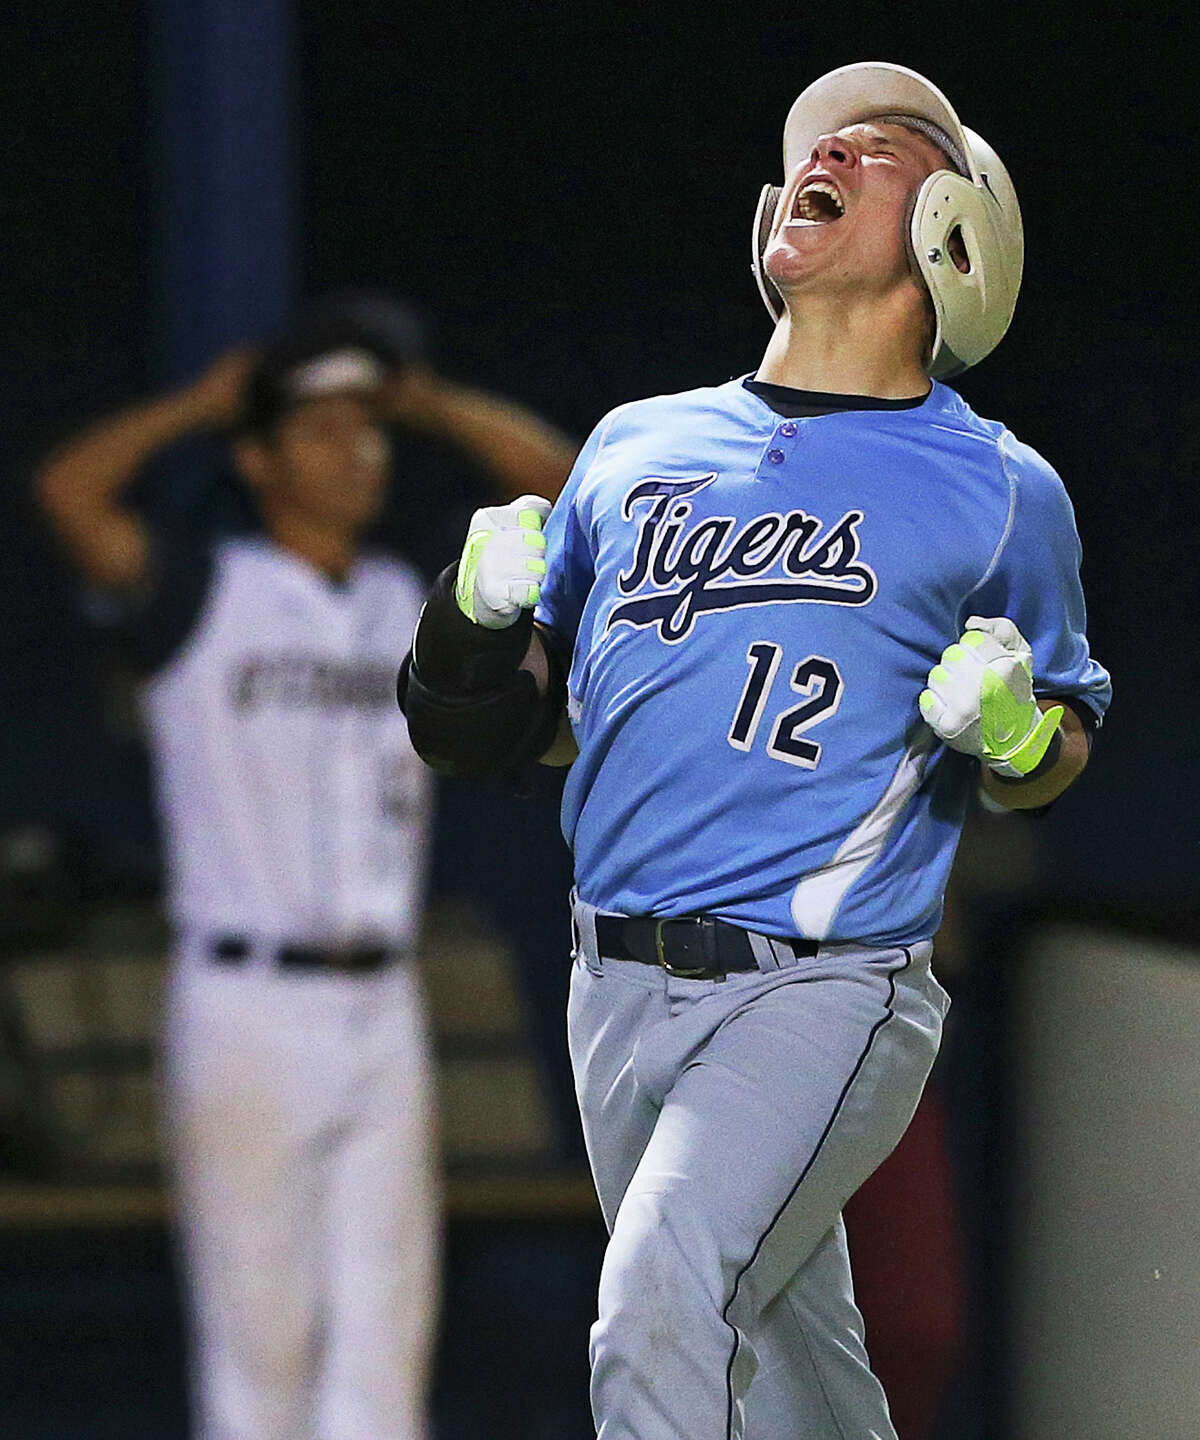 Tiger slugger Trace Bucey rounds third base celebrating after crushing a two run homer to right field late in the game as O'Connor plays Carroll in game 1 of the 5A regional quarterfinal match at SAISD Spring Sports Complex on May 15, 2014.